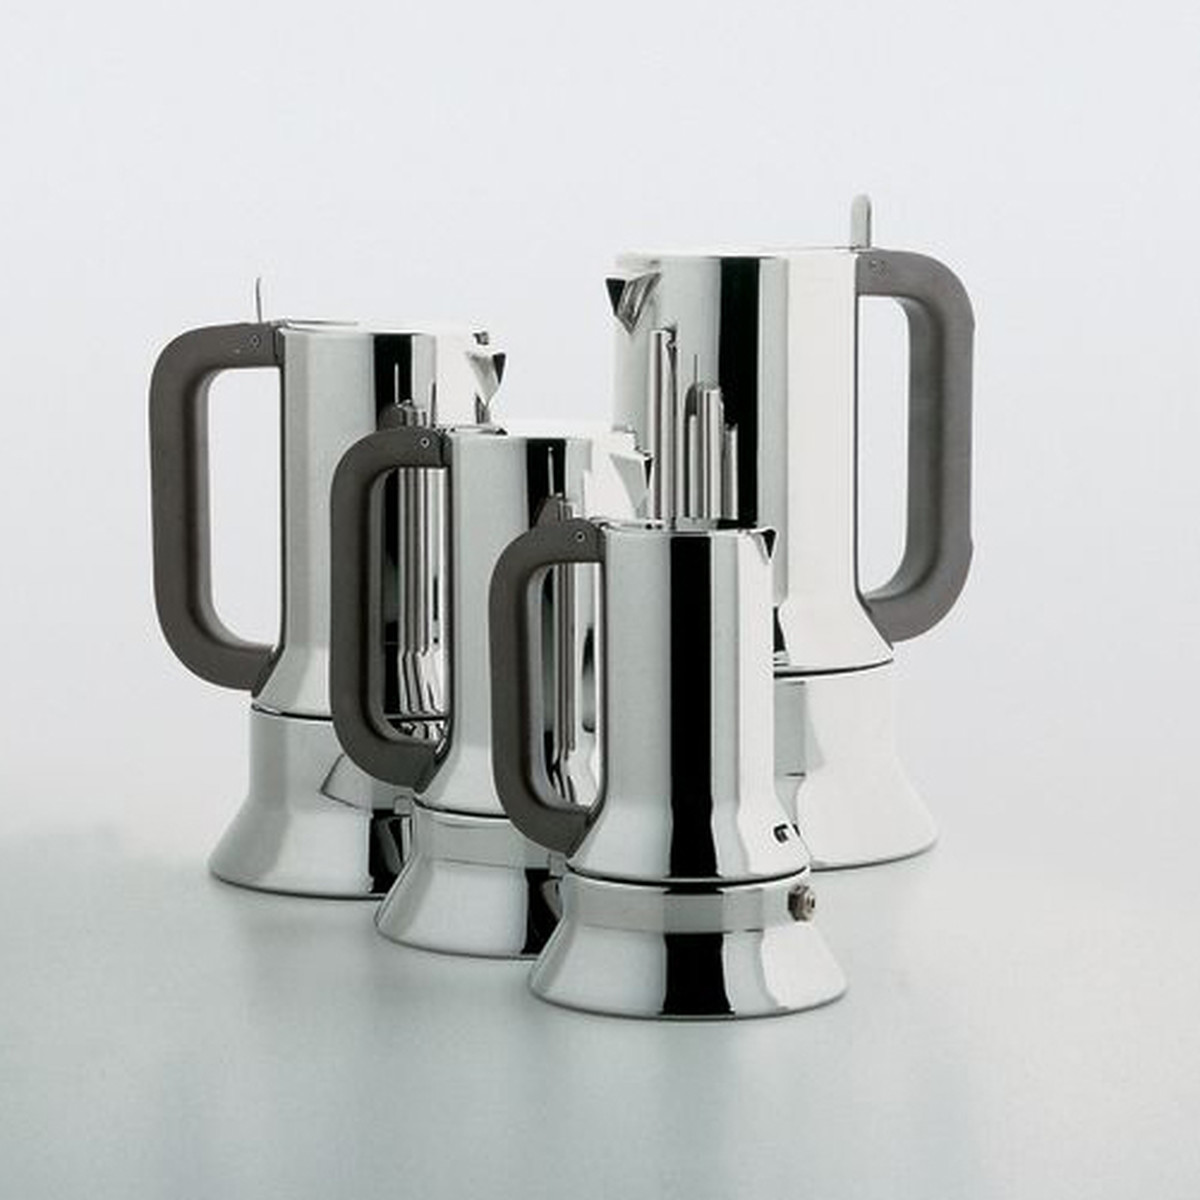 latest exquisite design hot sale online cafetiere 9090 alessi